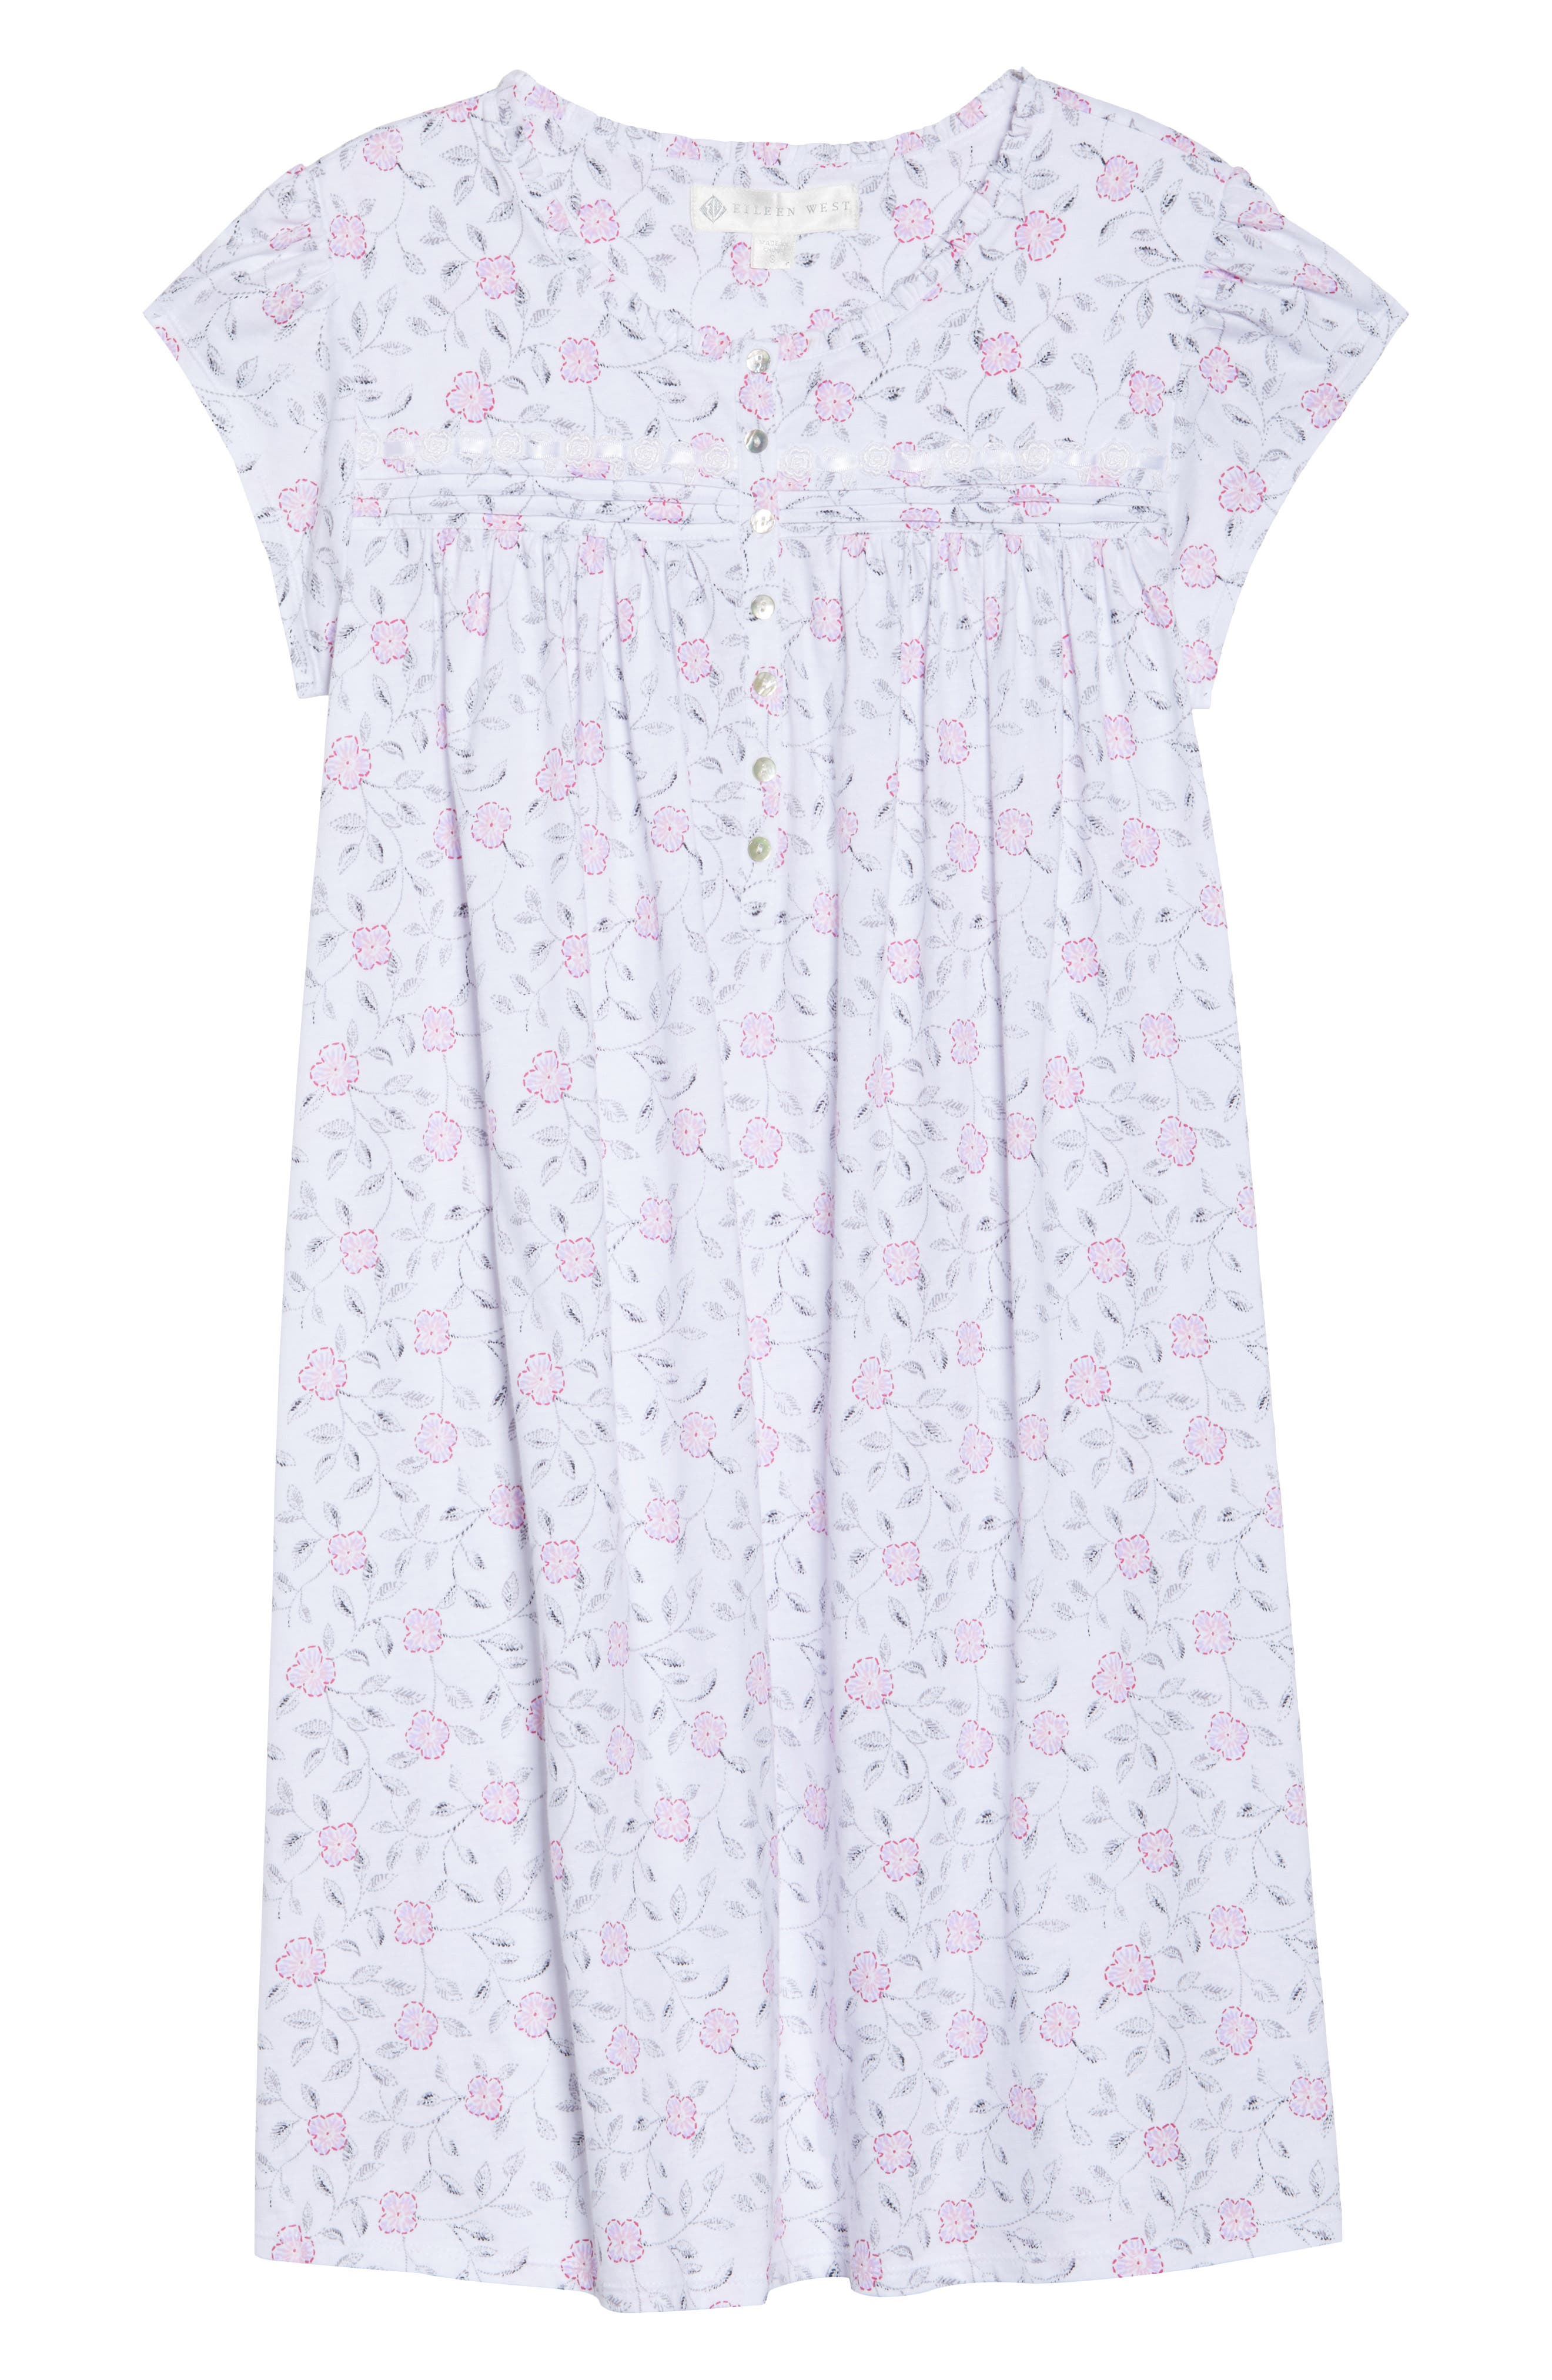 Cotton Jersey Nightgown,                             Alternate thumbnail 6, color,